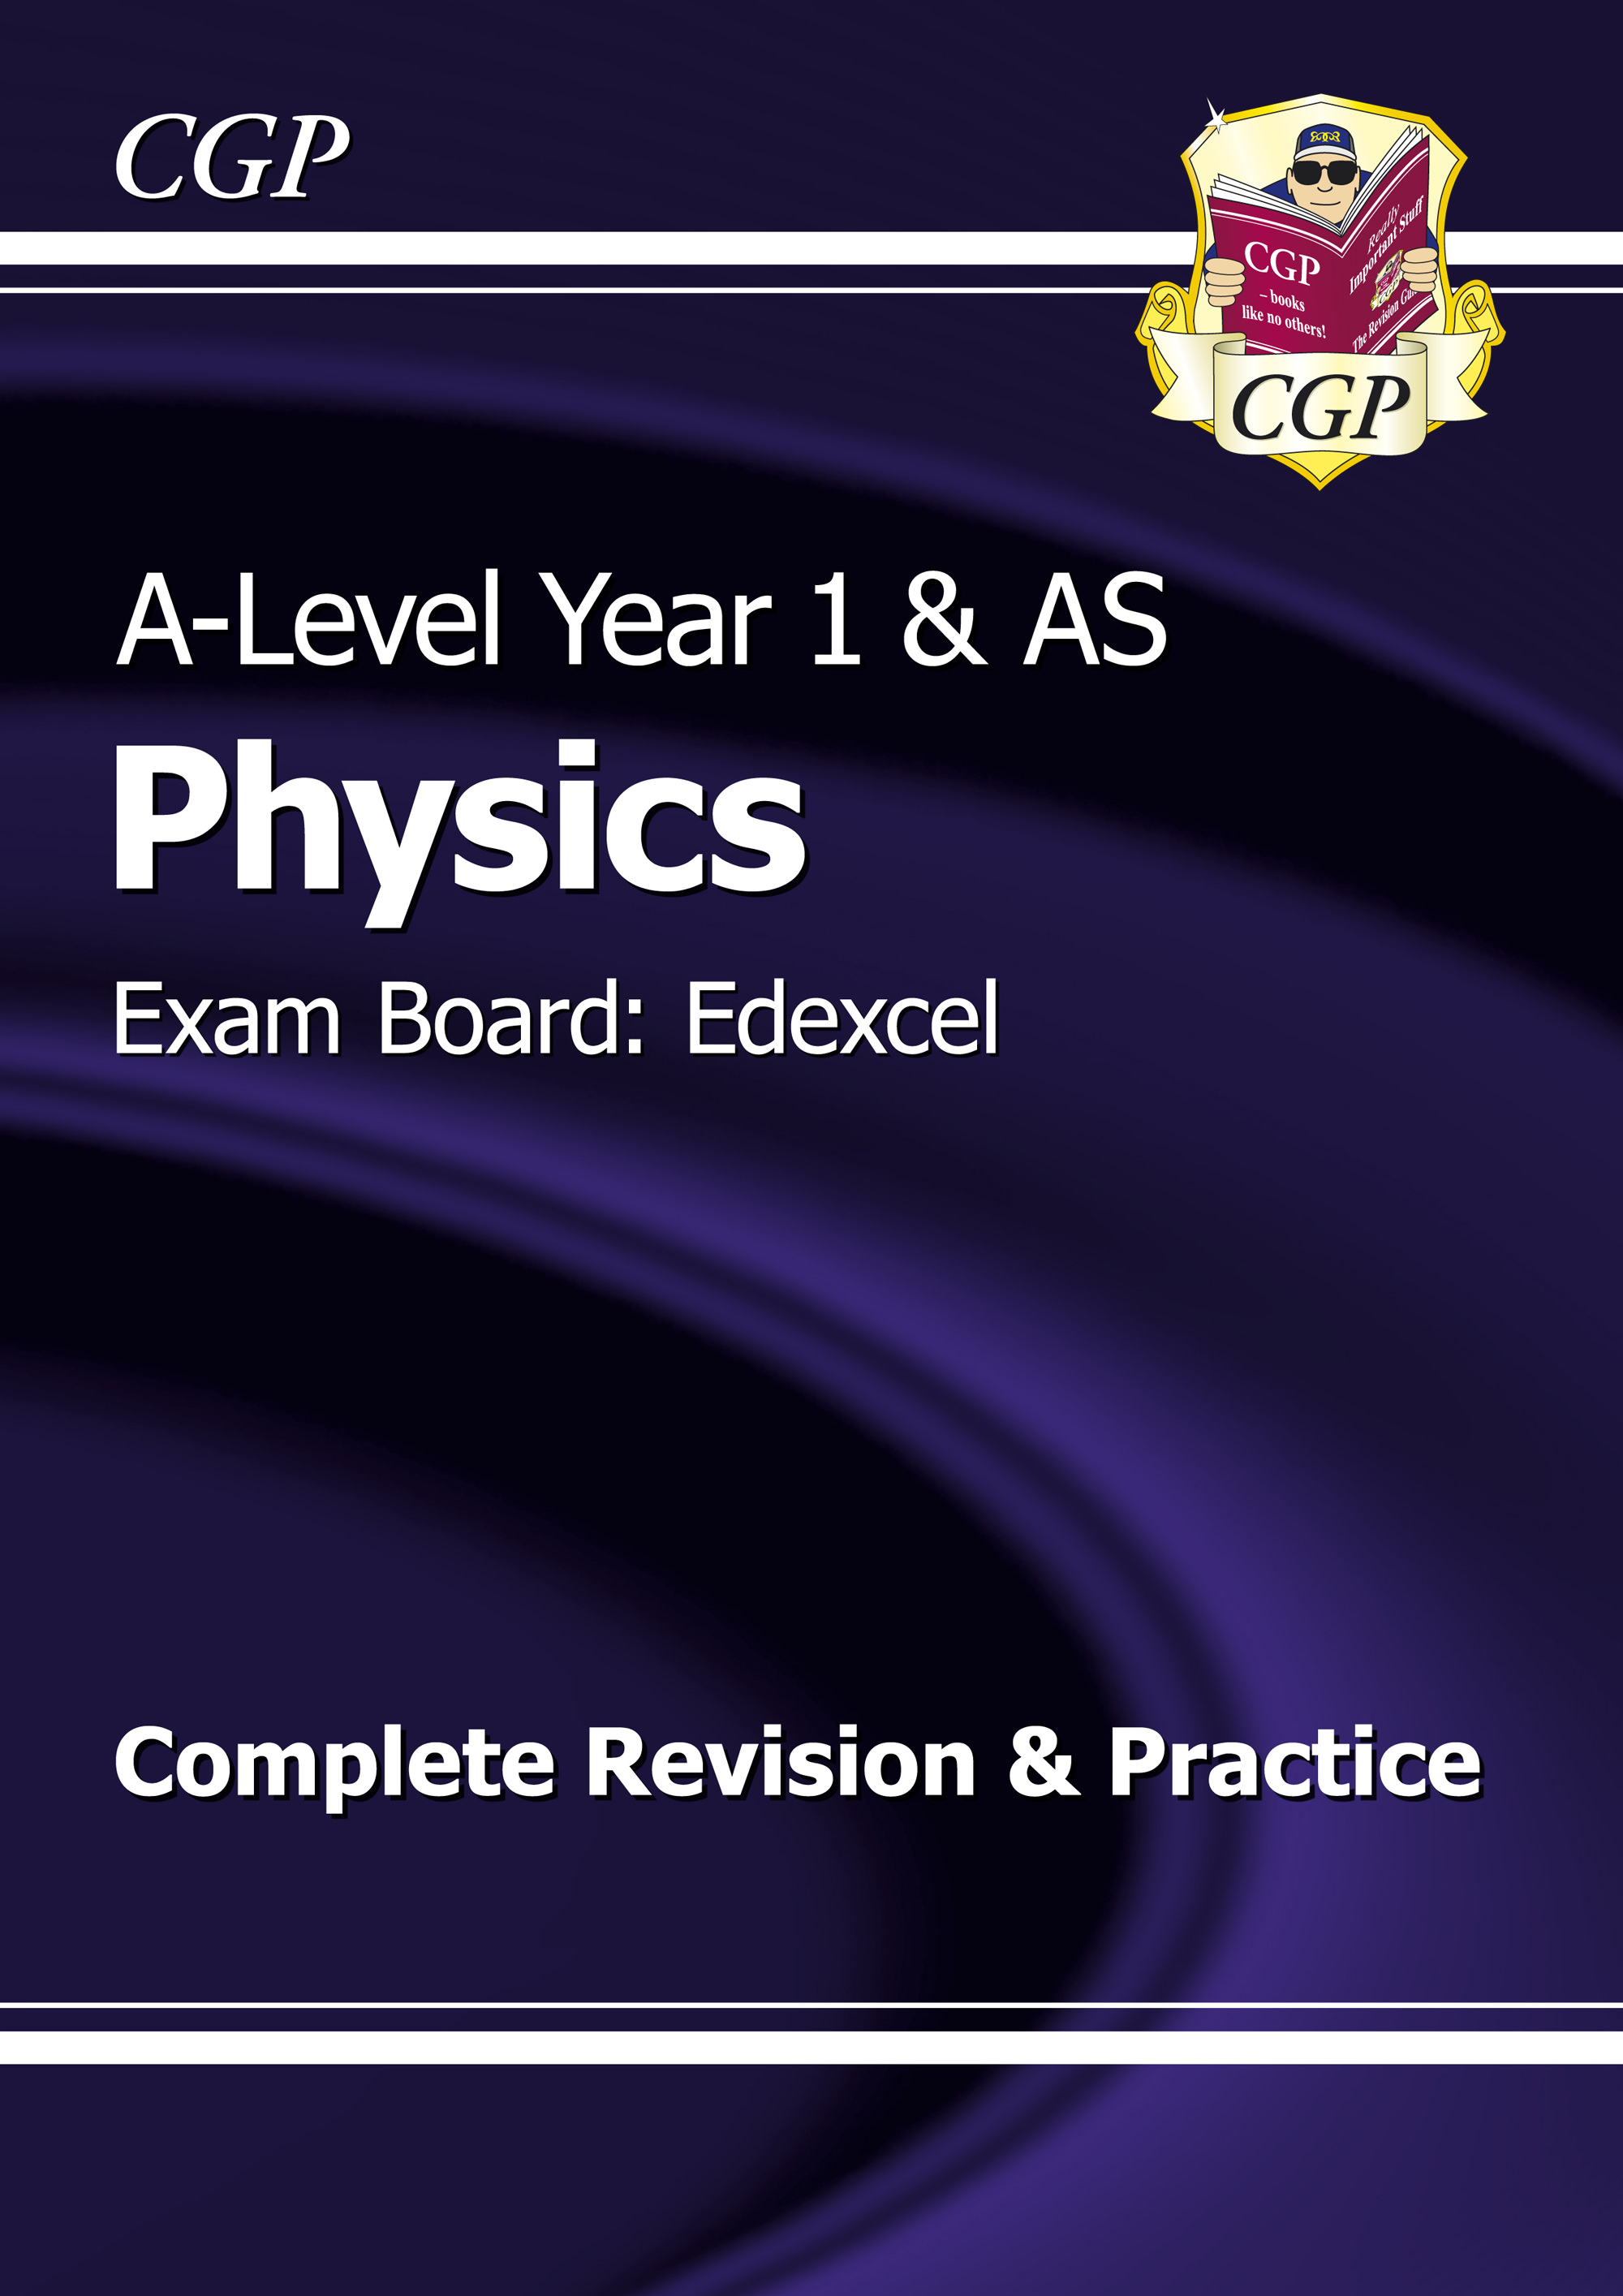 PER53DK - A-Level Physics: Edexcel Year 1 & AS Complete Revision & Practice